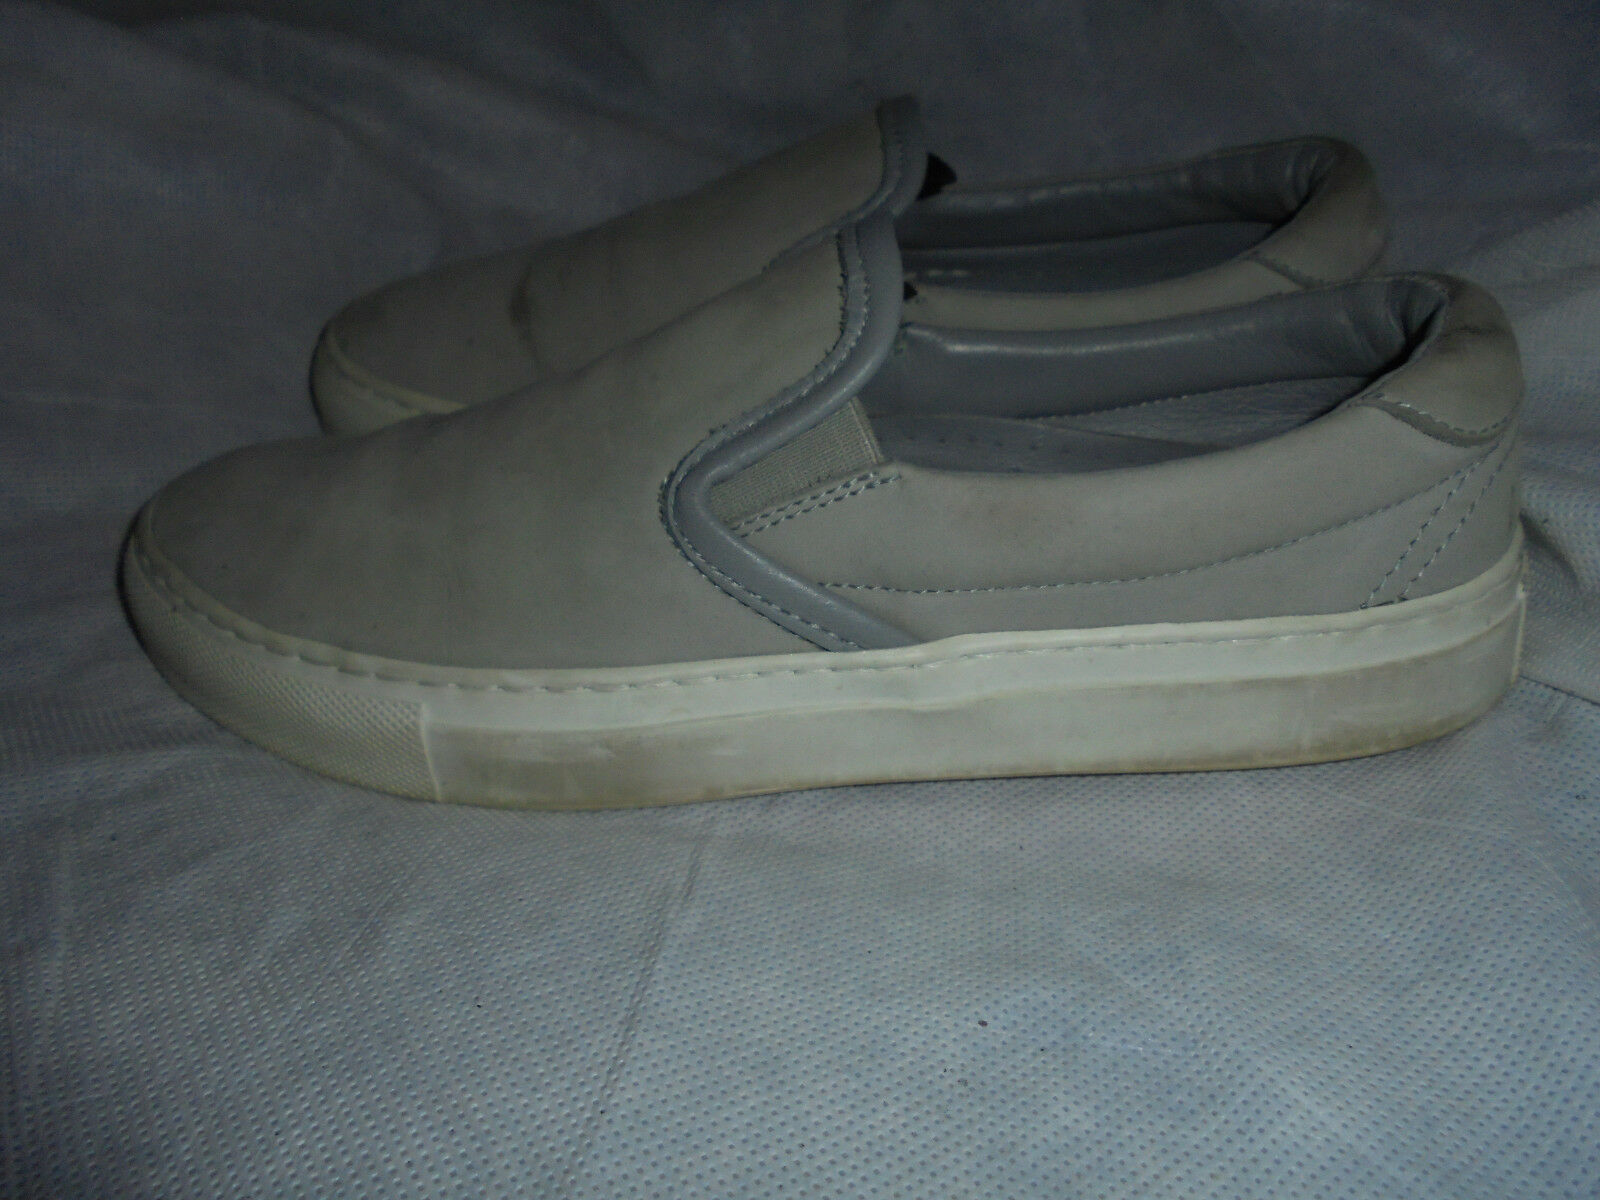 DIEMME WOMEN GREY LEATHER SLIP ON SNEAKER SIZE UK 5 EU 38 VGC